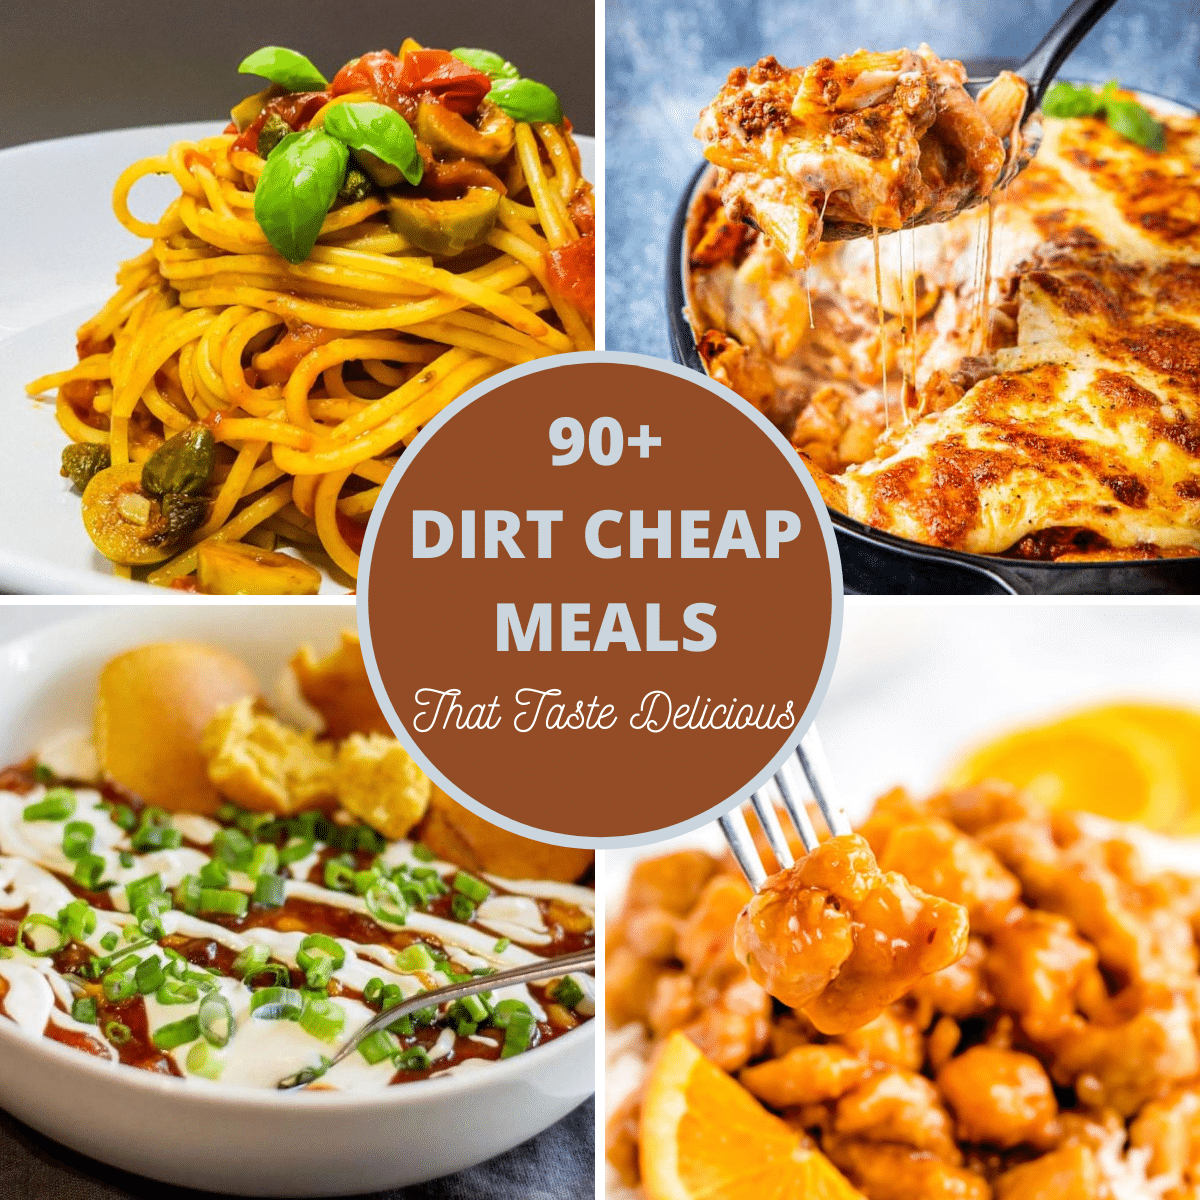 4 images from the Dirt cheap meals listed.